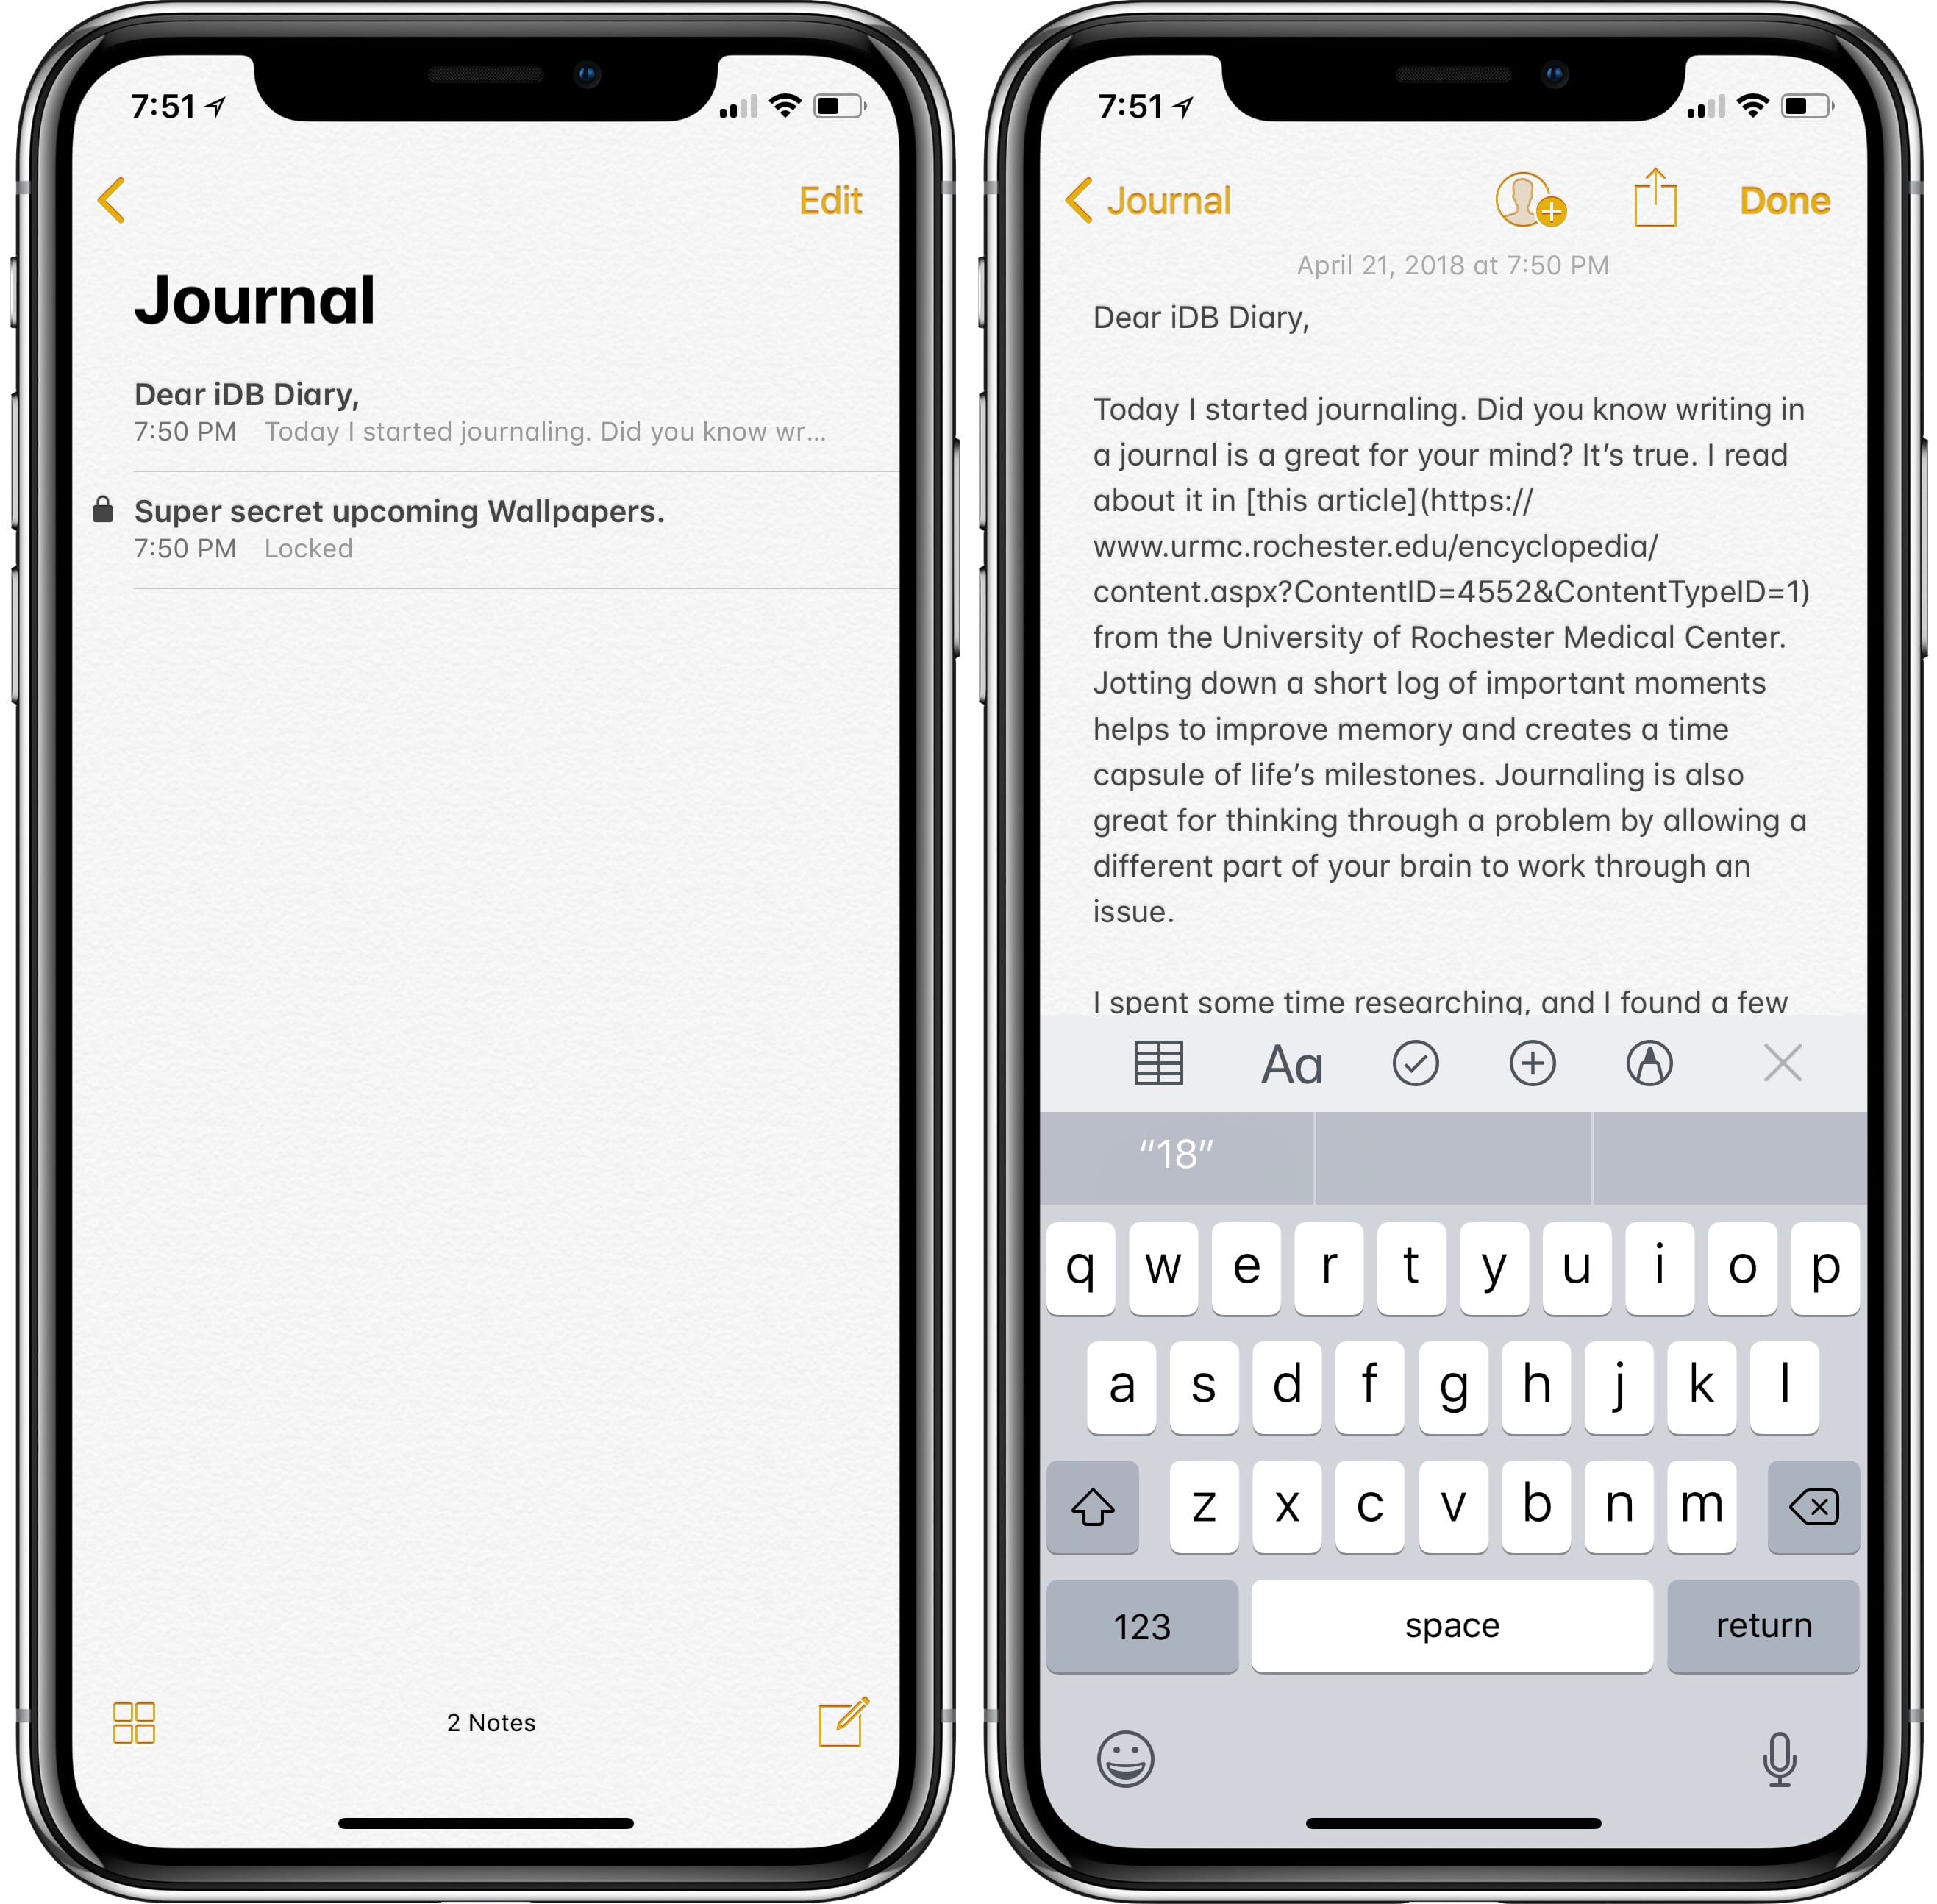 best journaling apps for iphone and ipad - Apple's Notes app works as a free journal on every iOS device